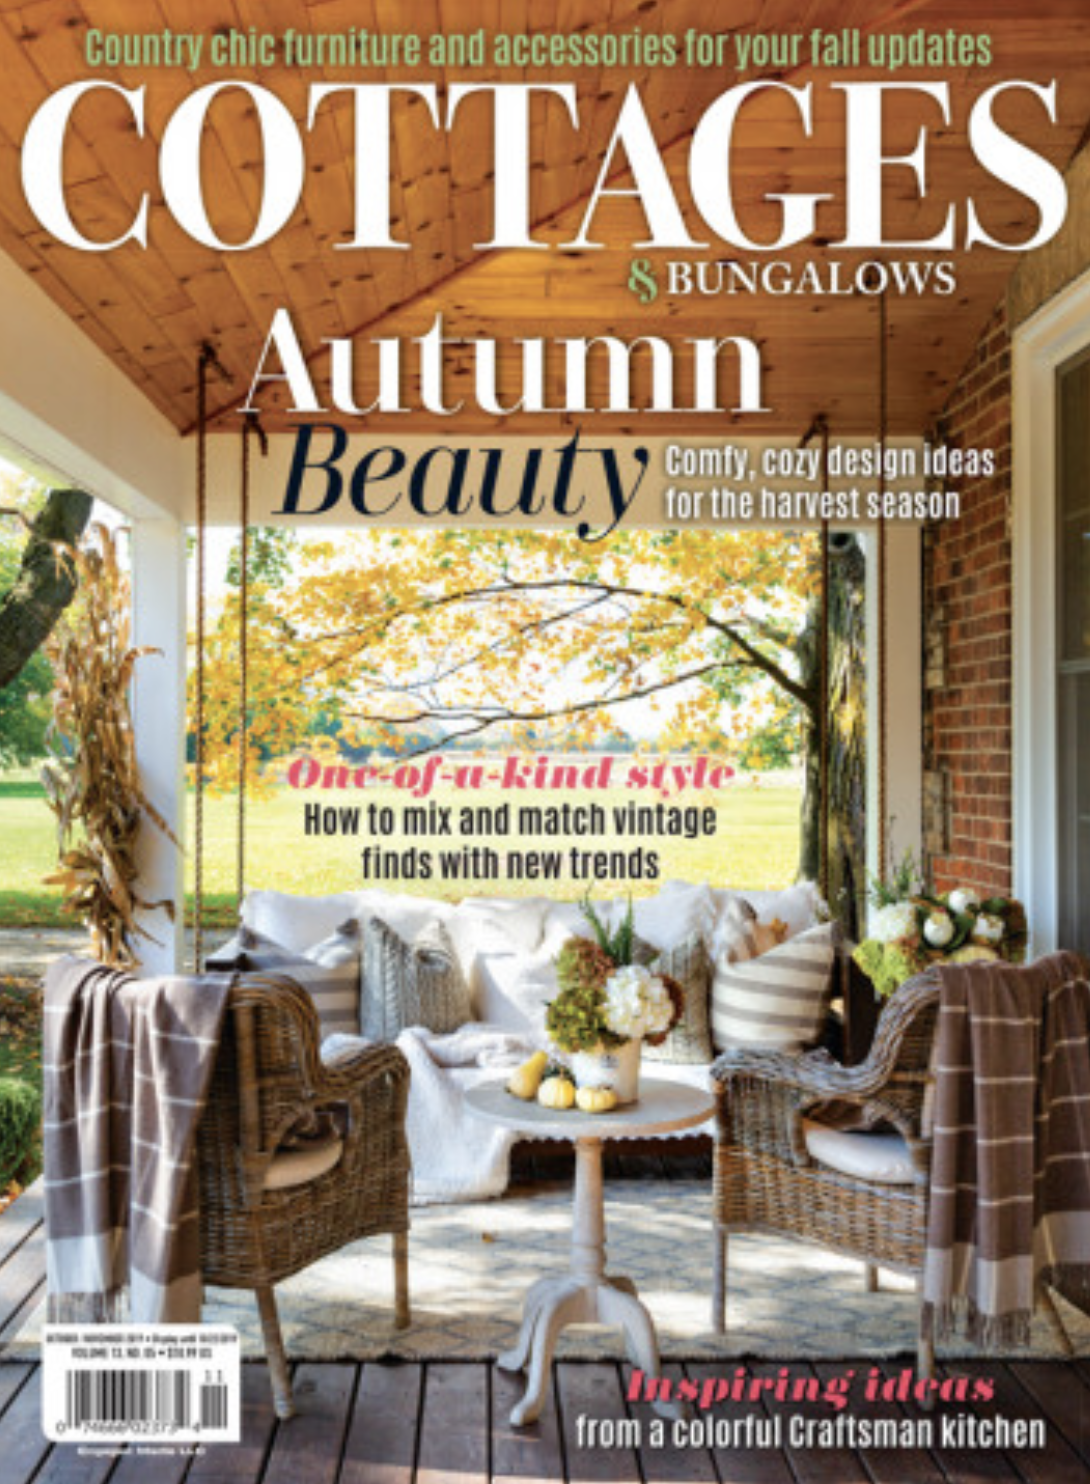 COTTAGES & BUNGALOWS, October/November 2019: Read a Room feature